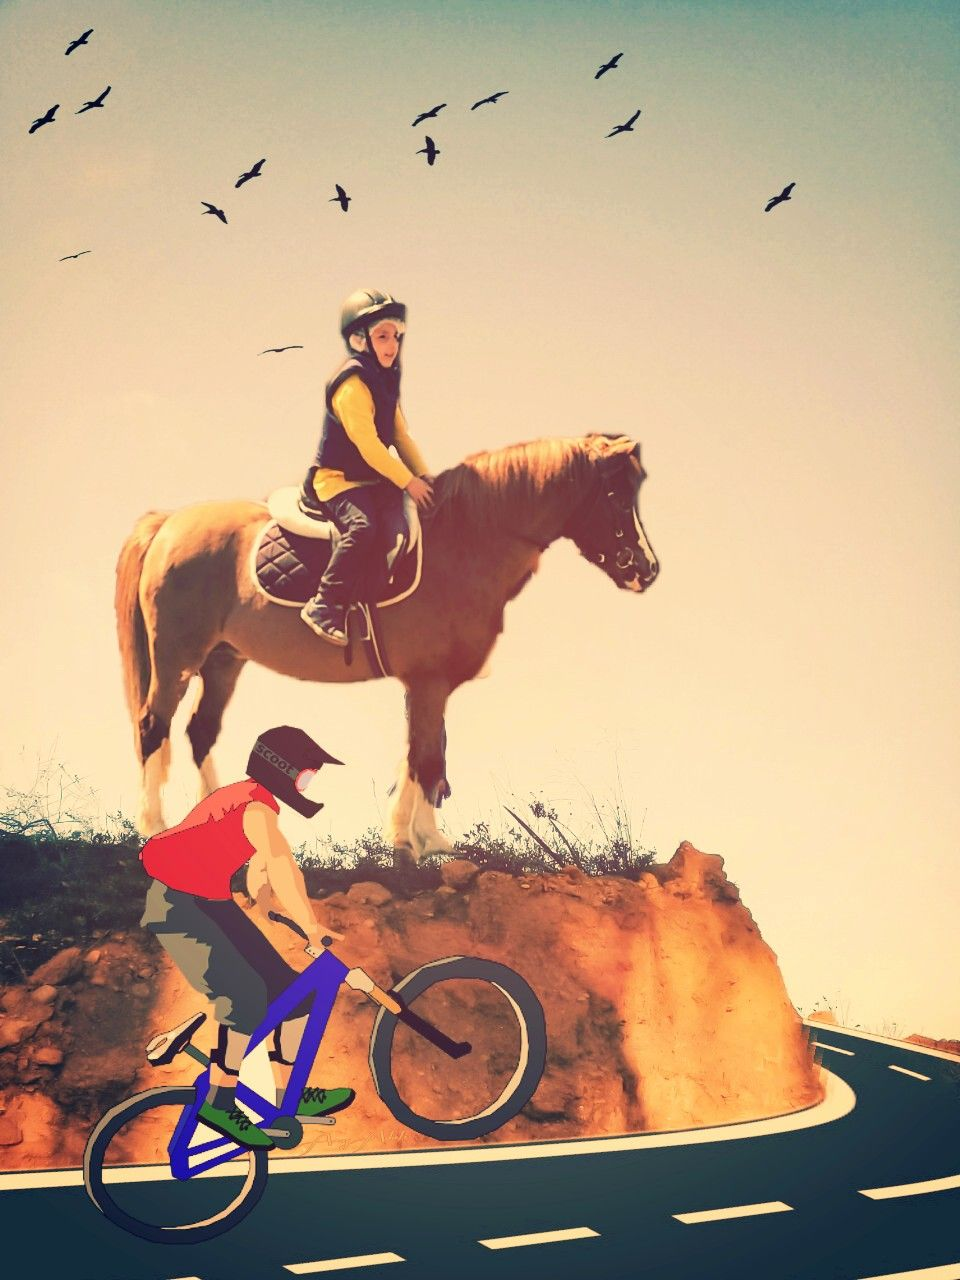 #freetoedit #remix #picsart #madewithpicsart #photography #edit #kids #child #horse #bicycle #people